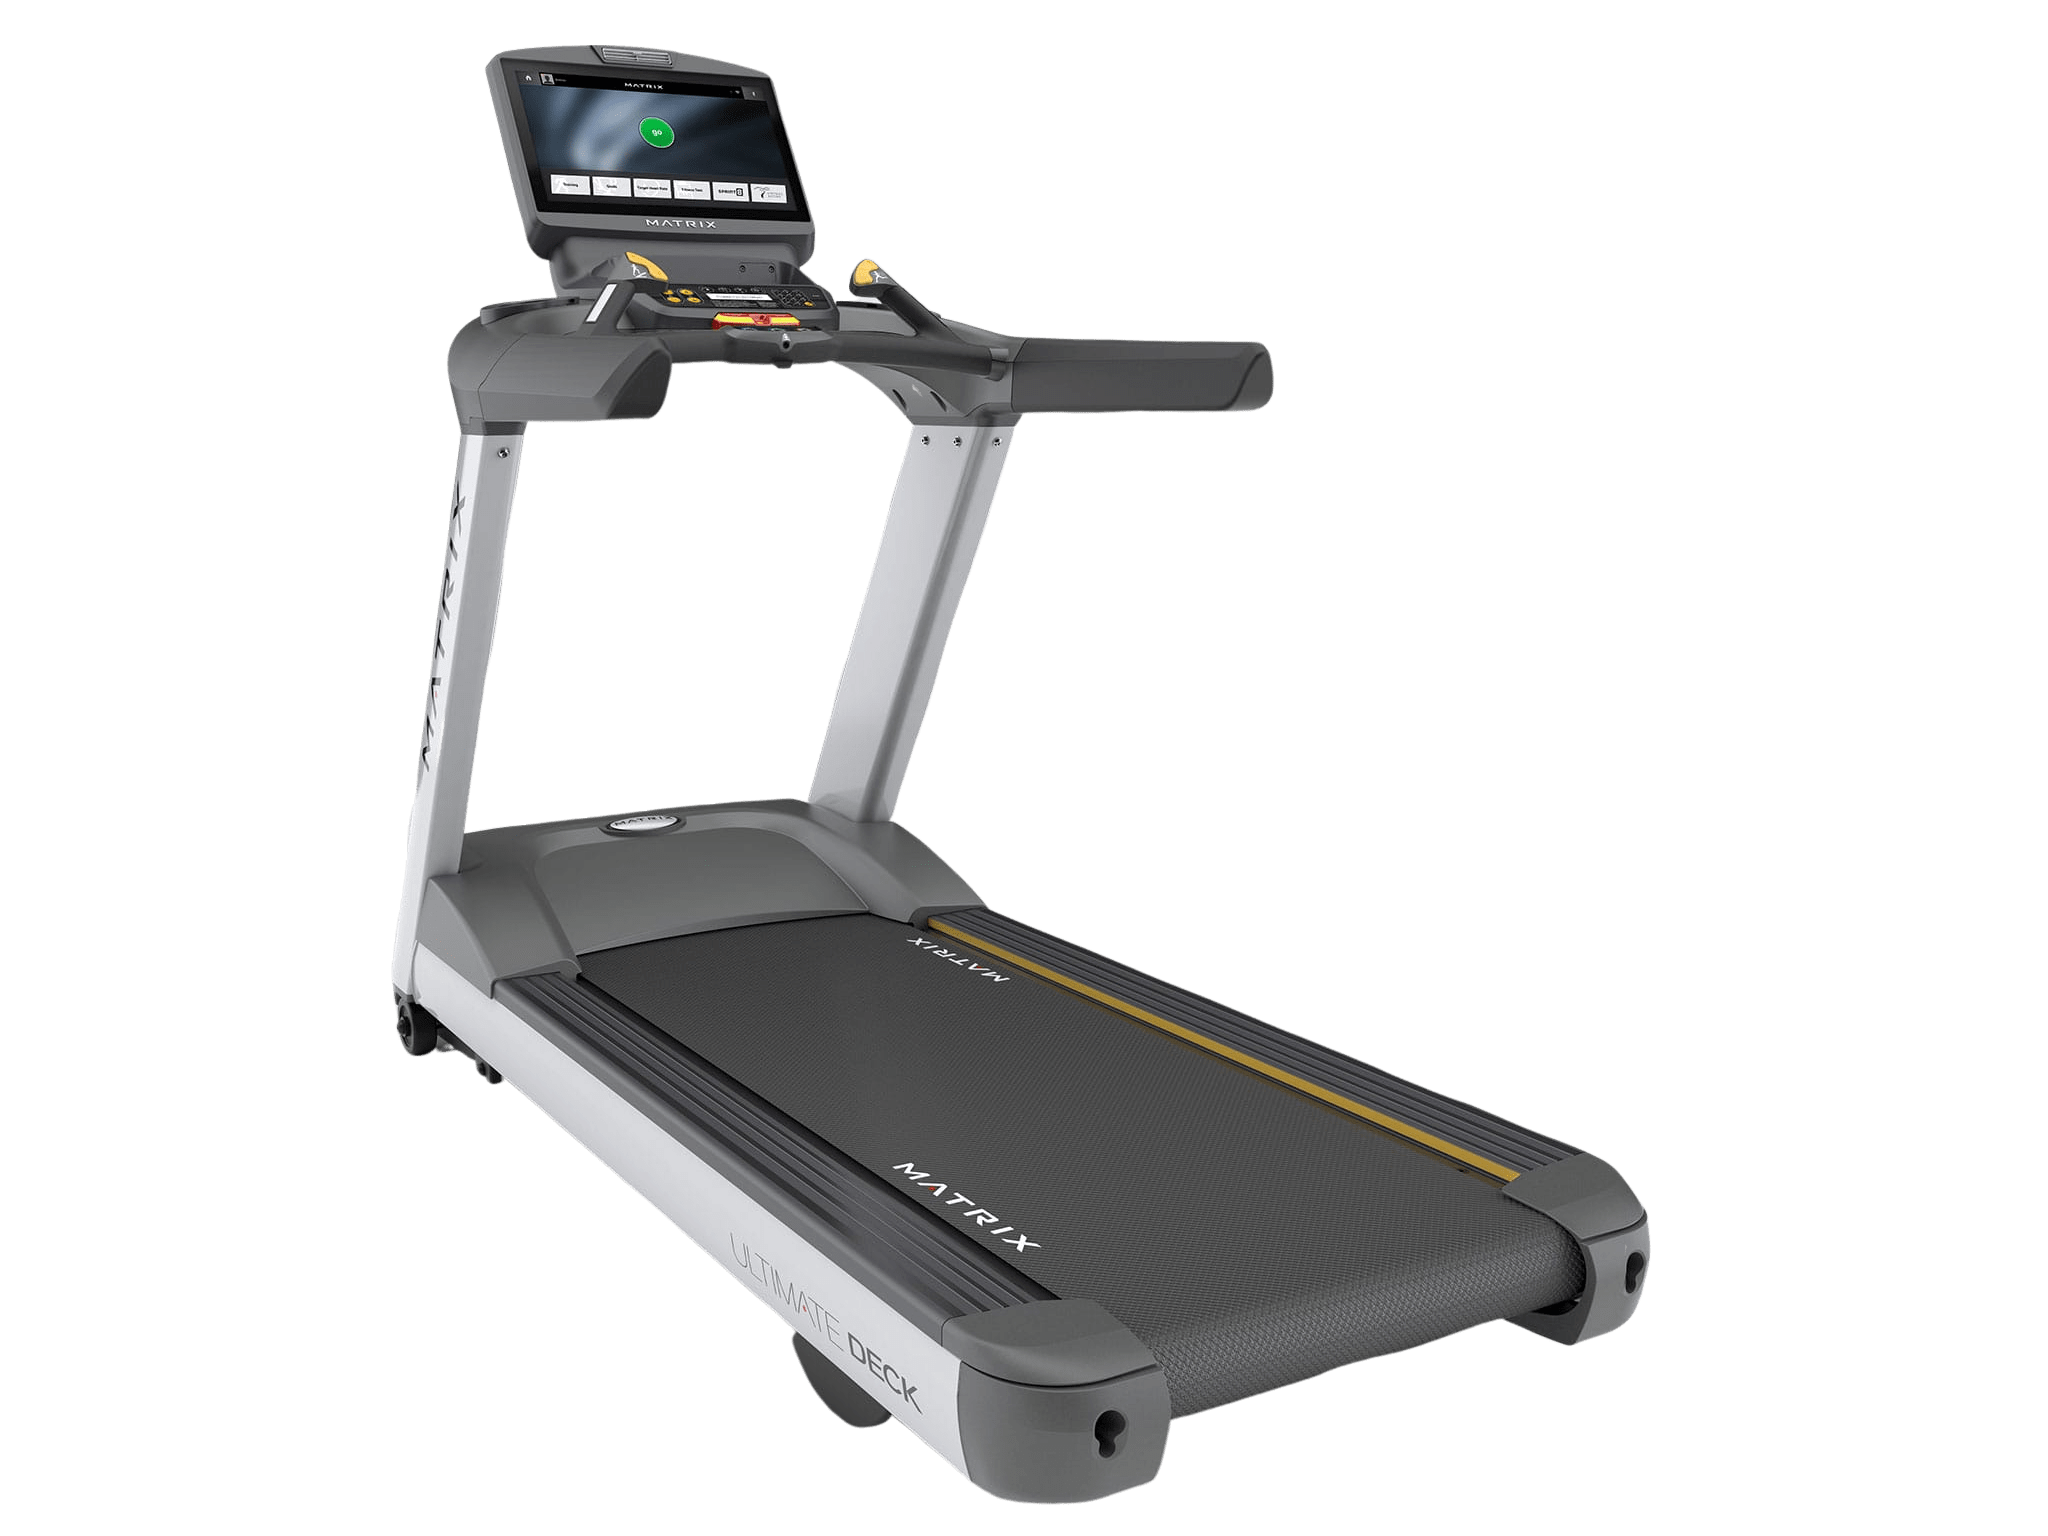 Refurbished Matrix Fitness T7xi Treadmill